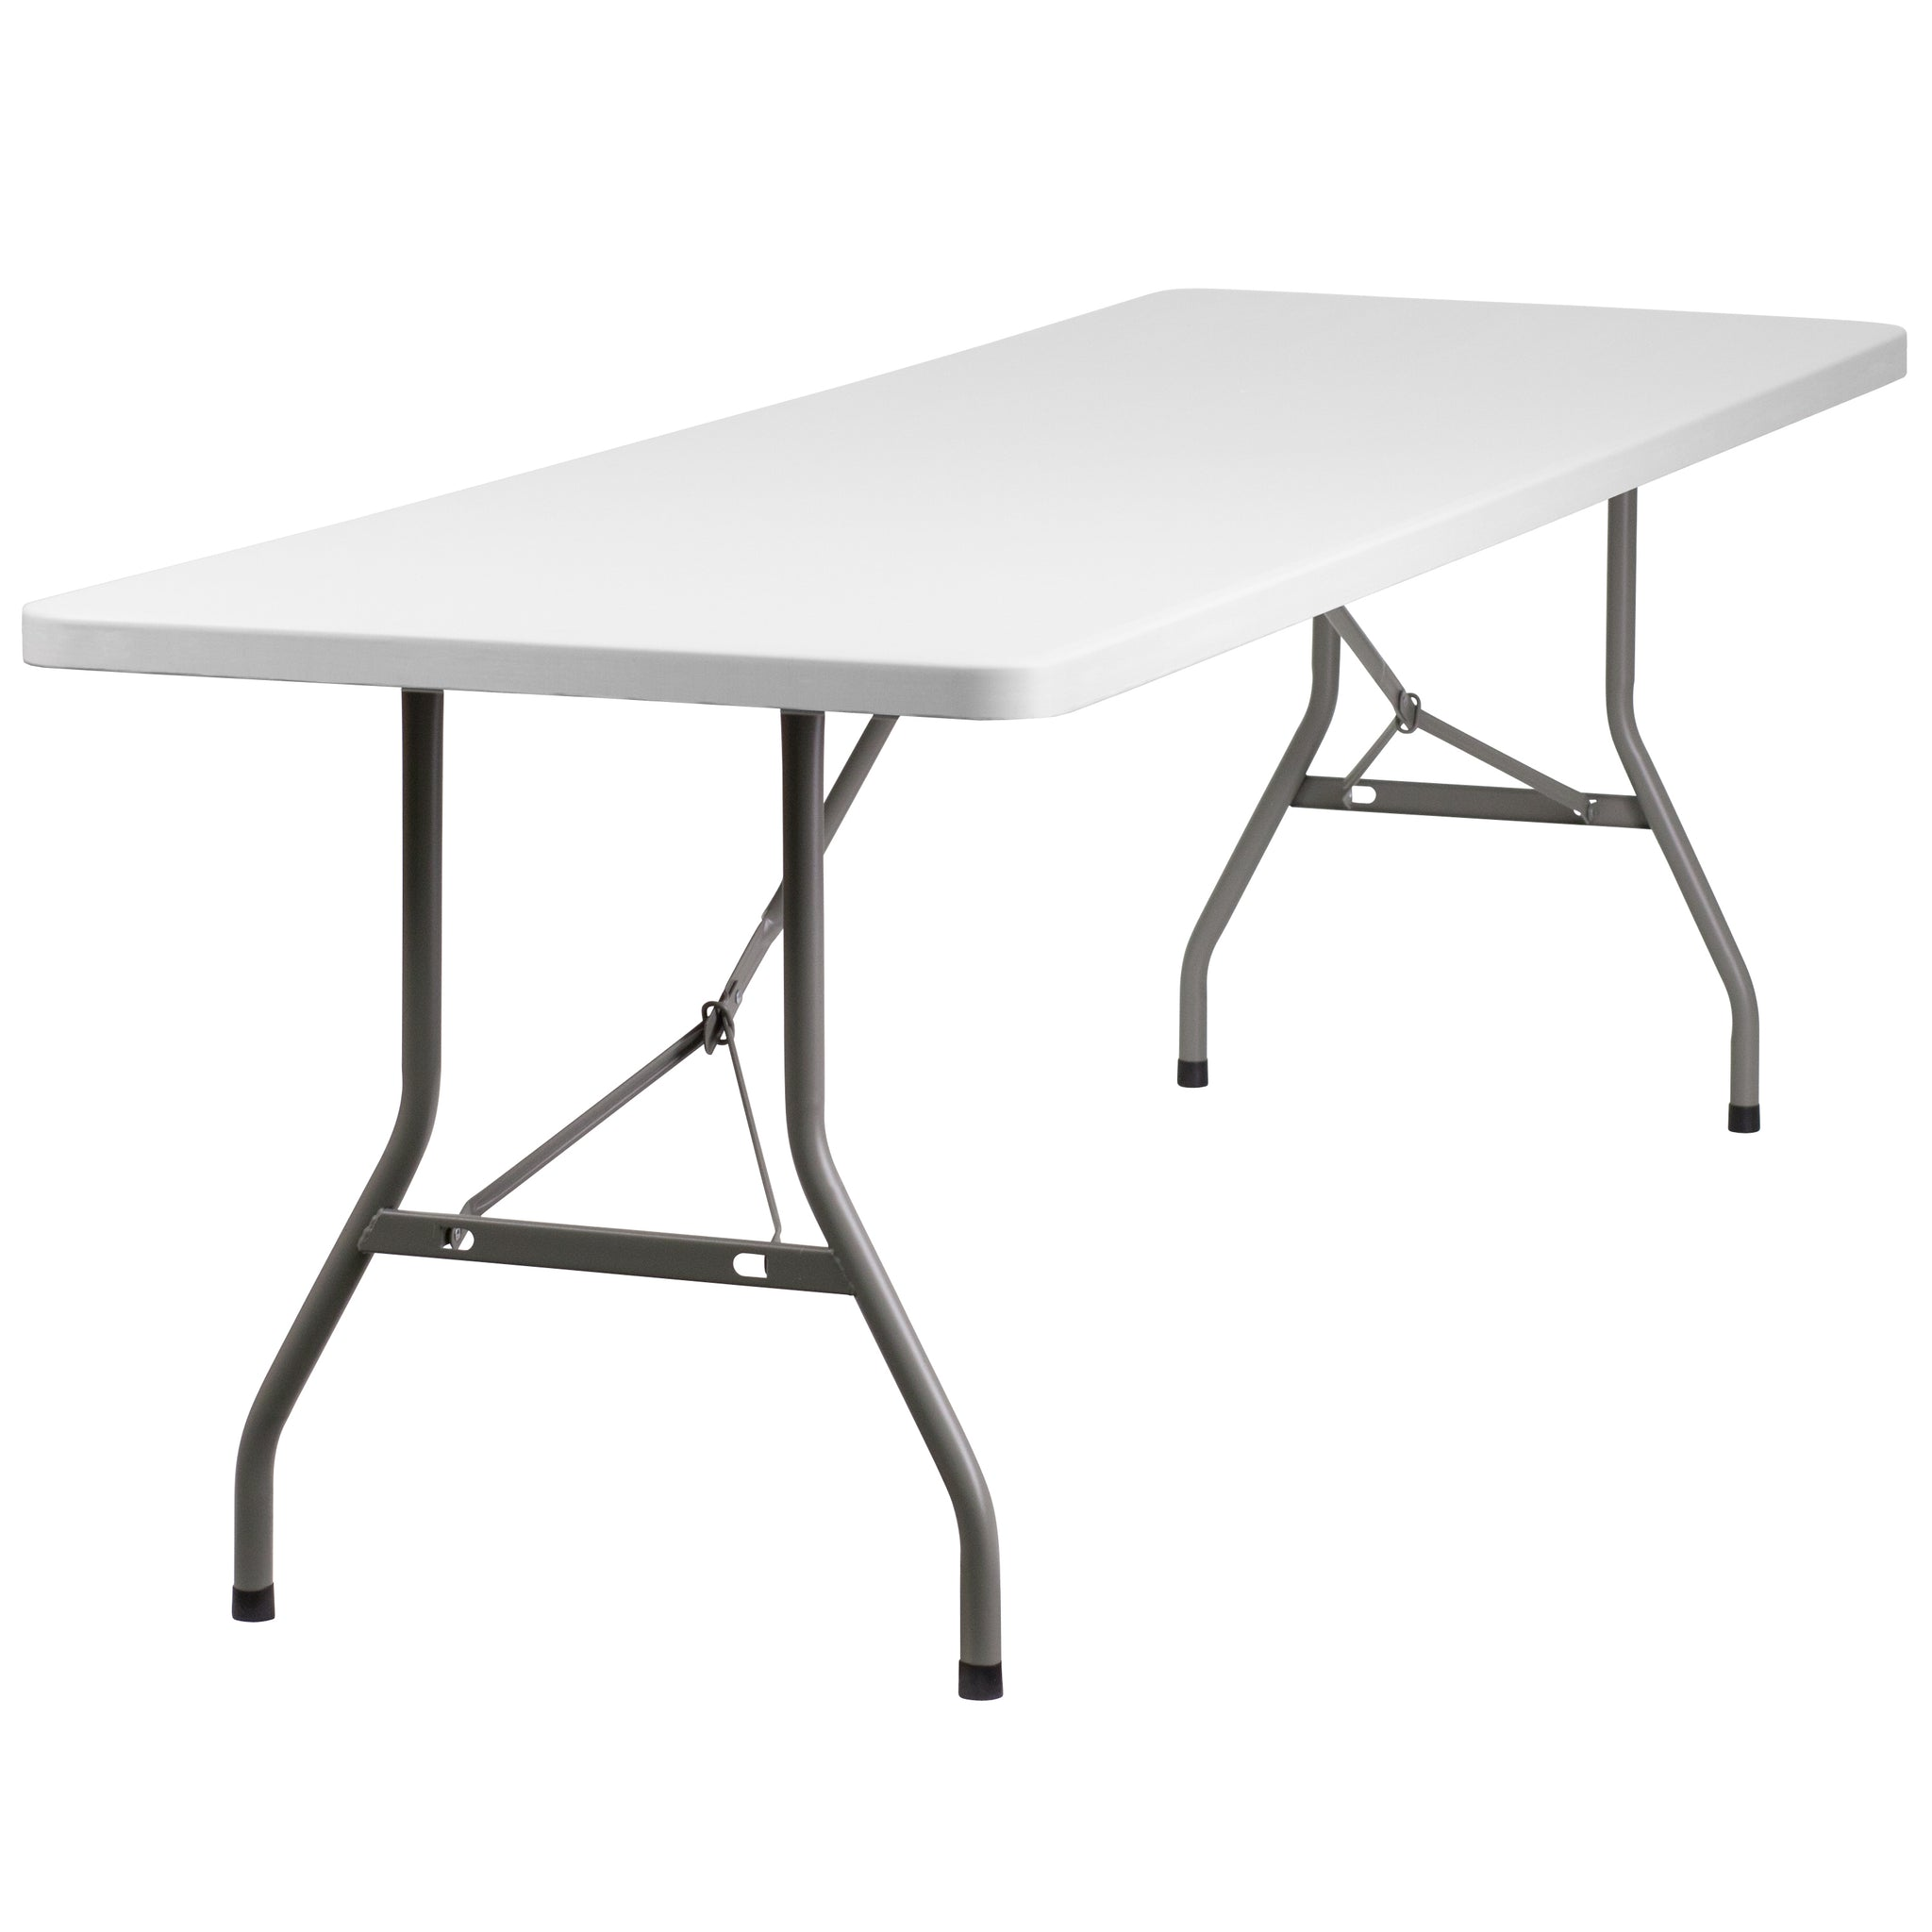 30''W x 96''L Granite Plastic Folding Table